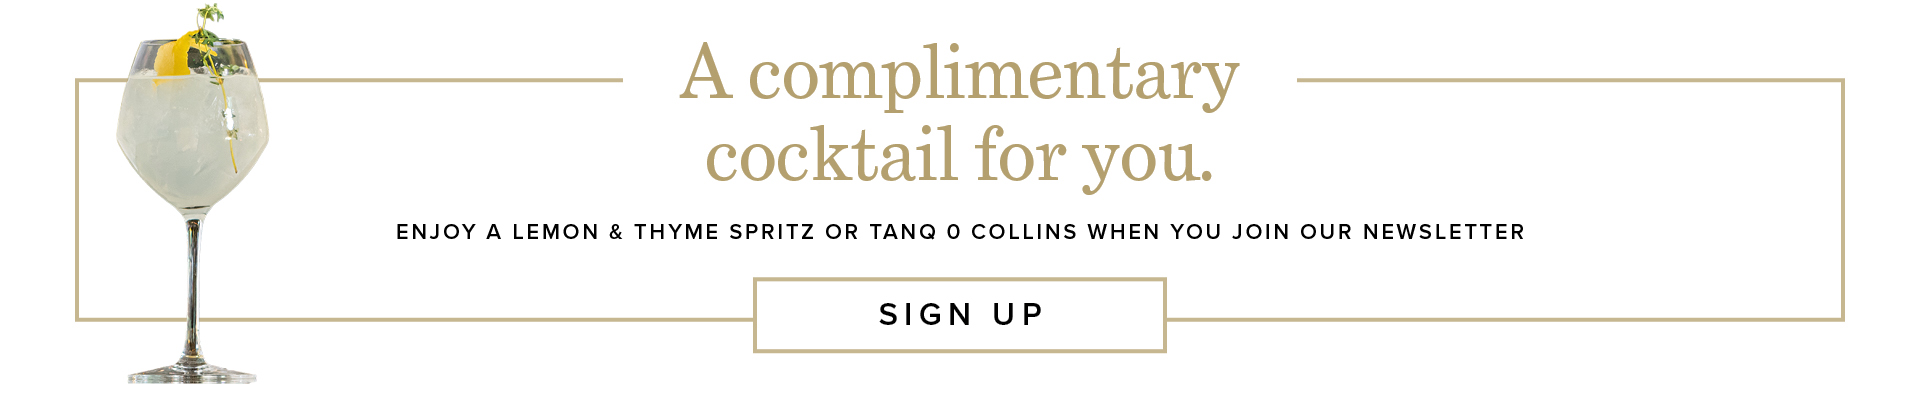 Sign up today for a complimentary cocktail